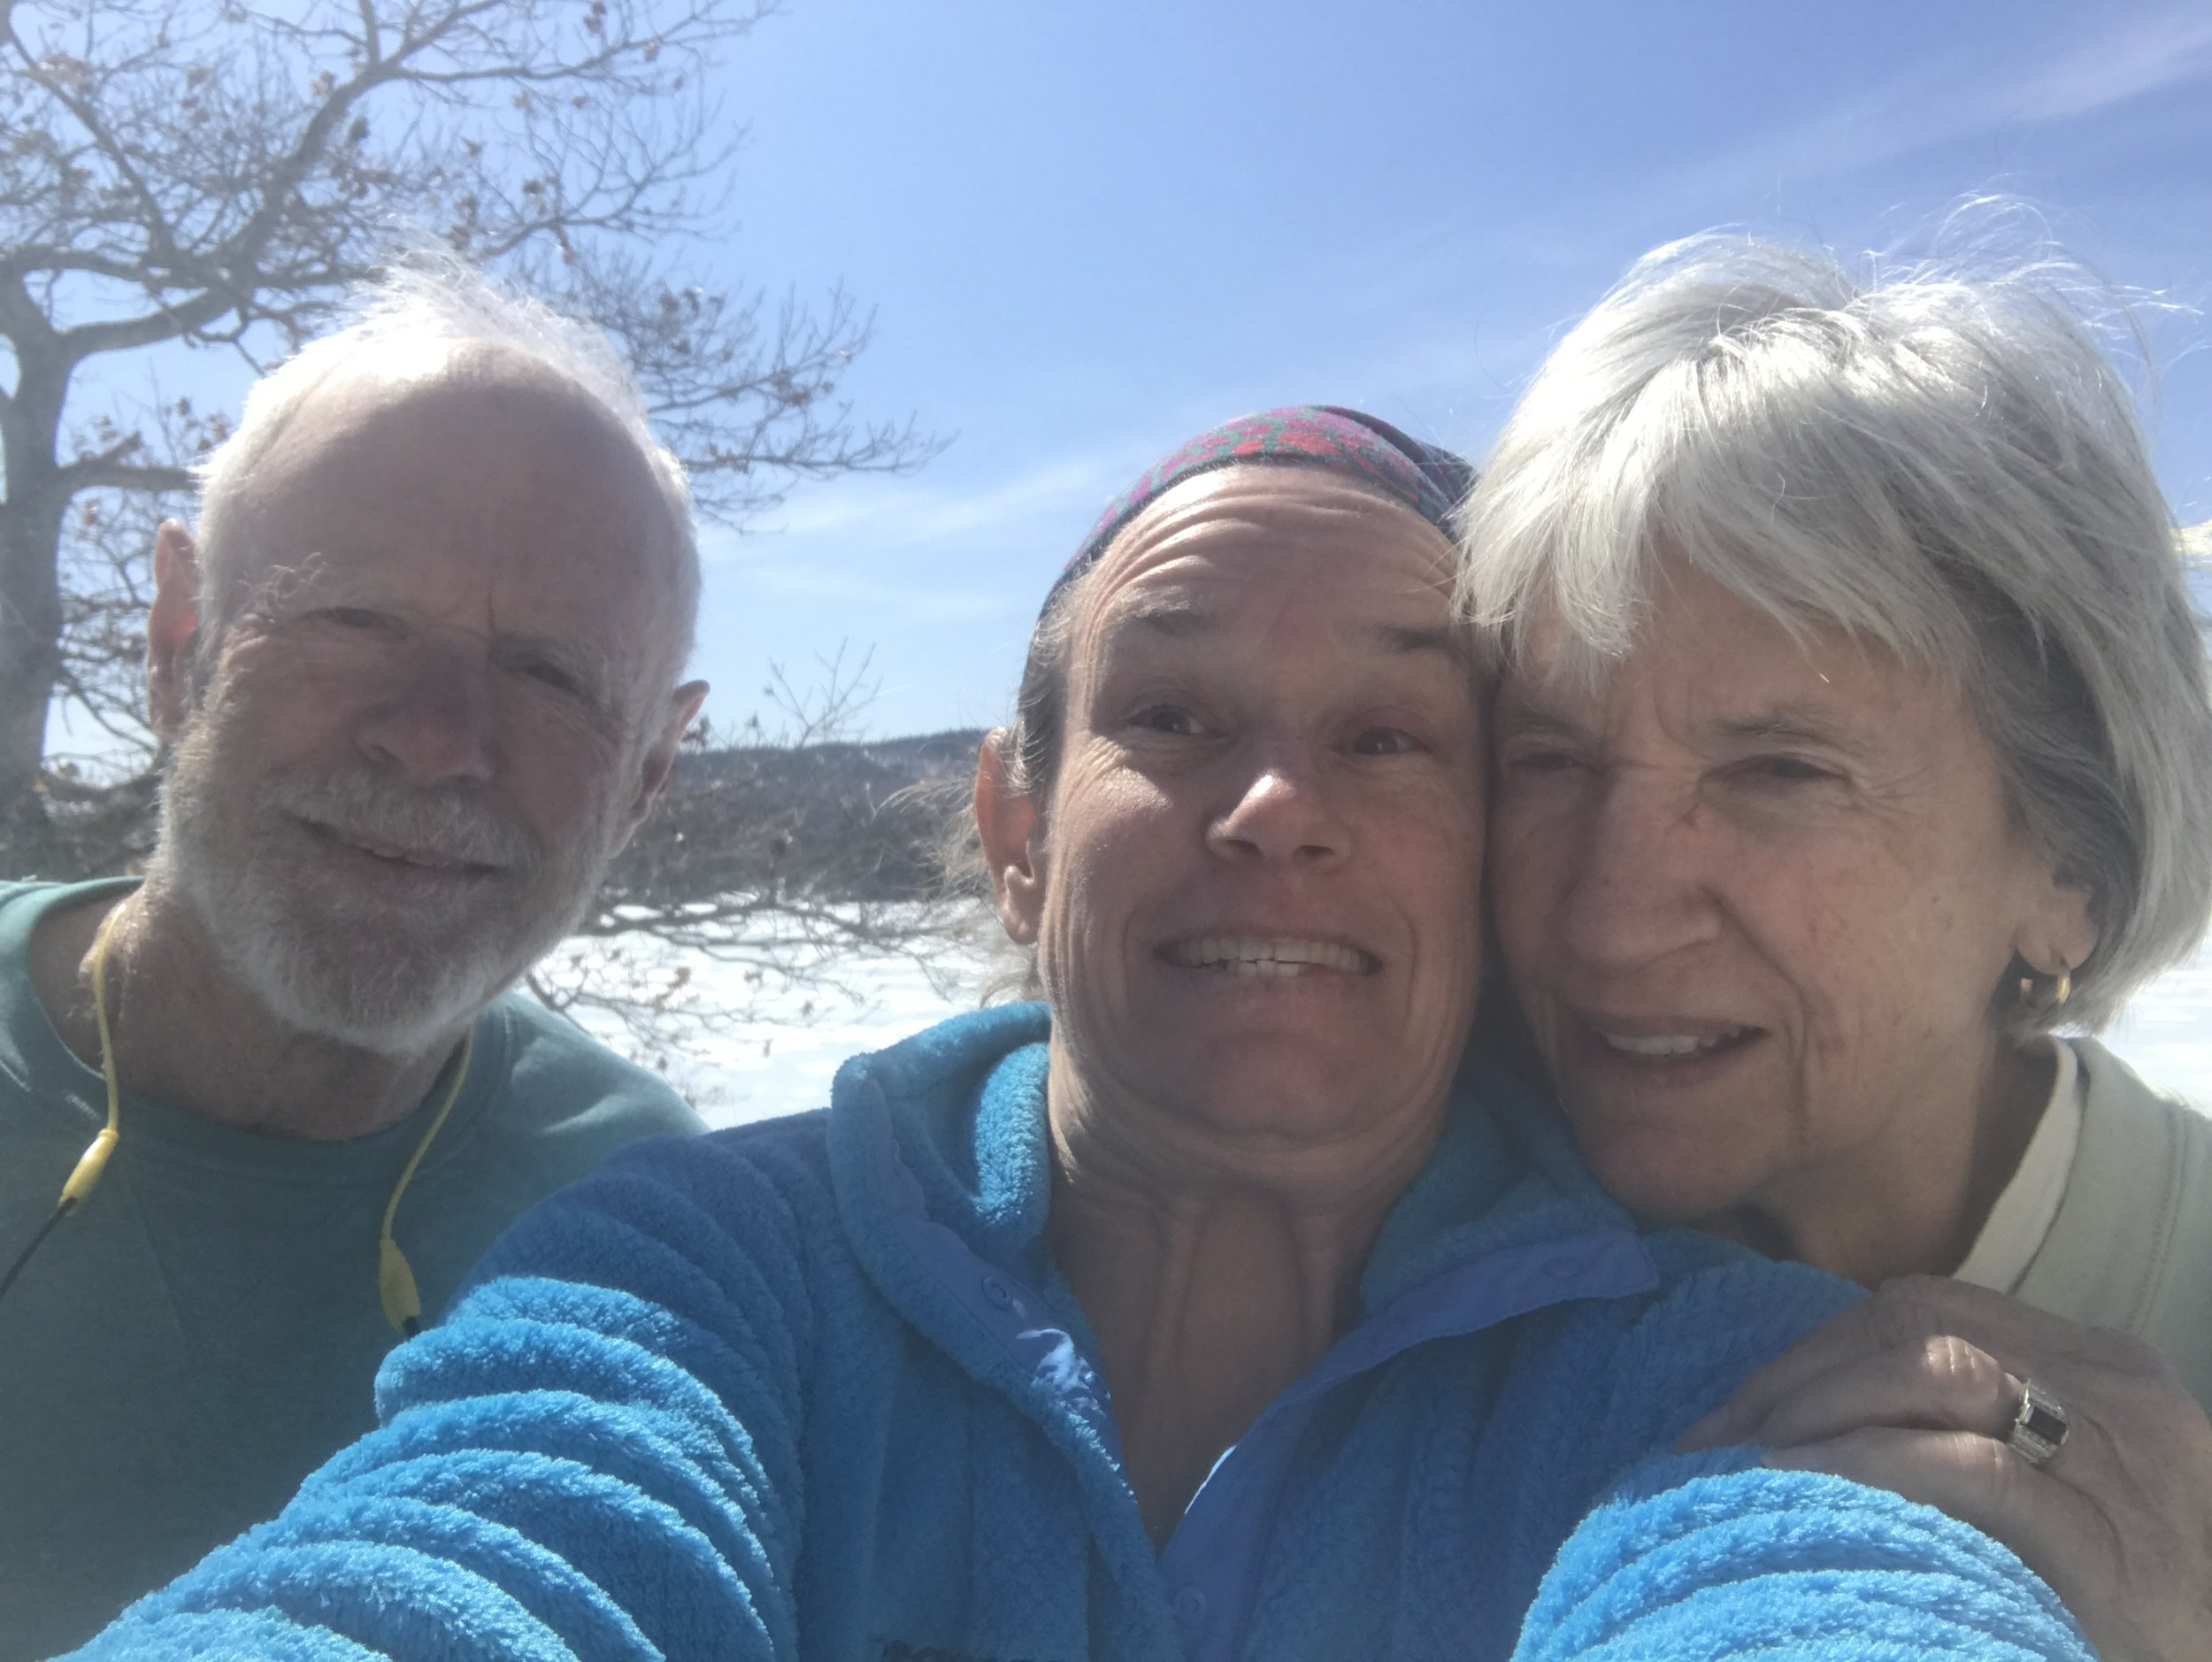 Mom and Dad and me on a work day, April 2019